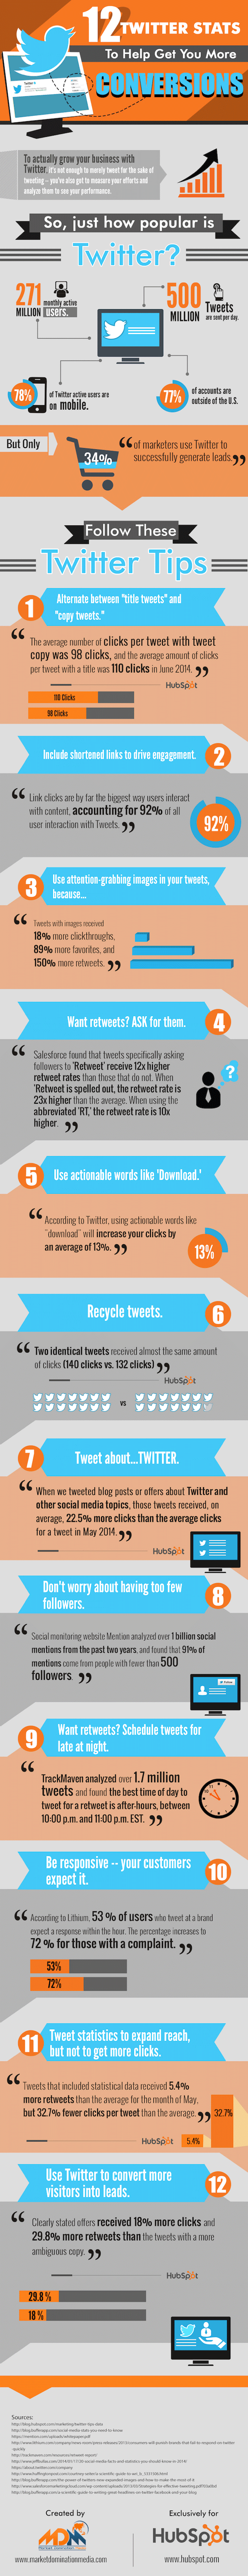 12 Tips to Increase Engagement on Twitter Infographic image